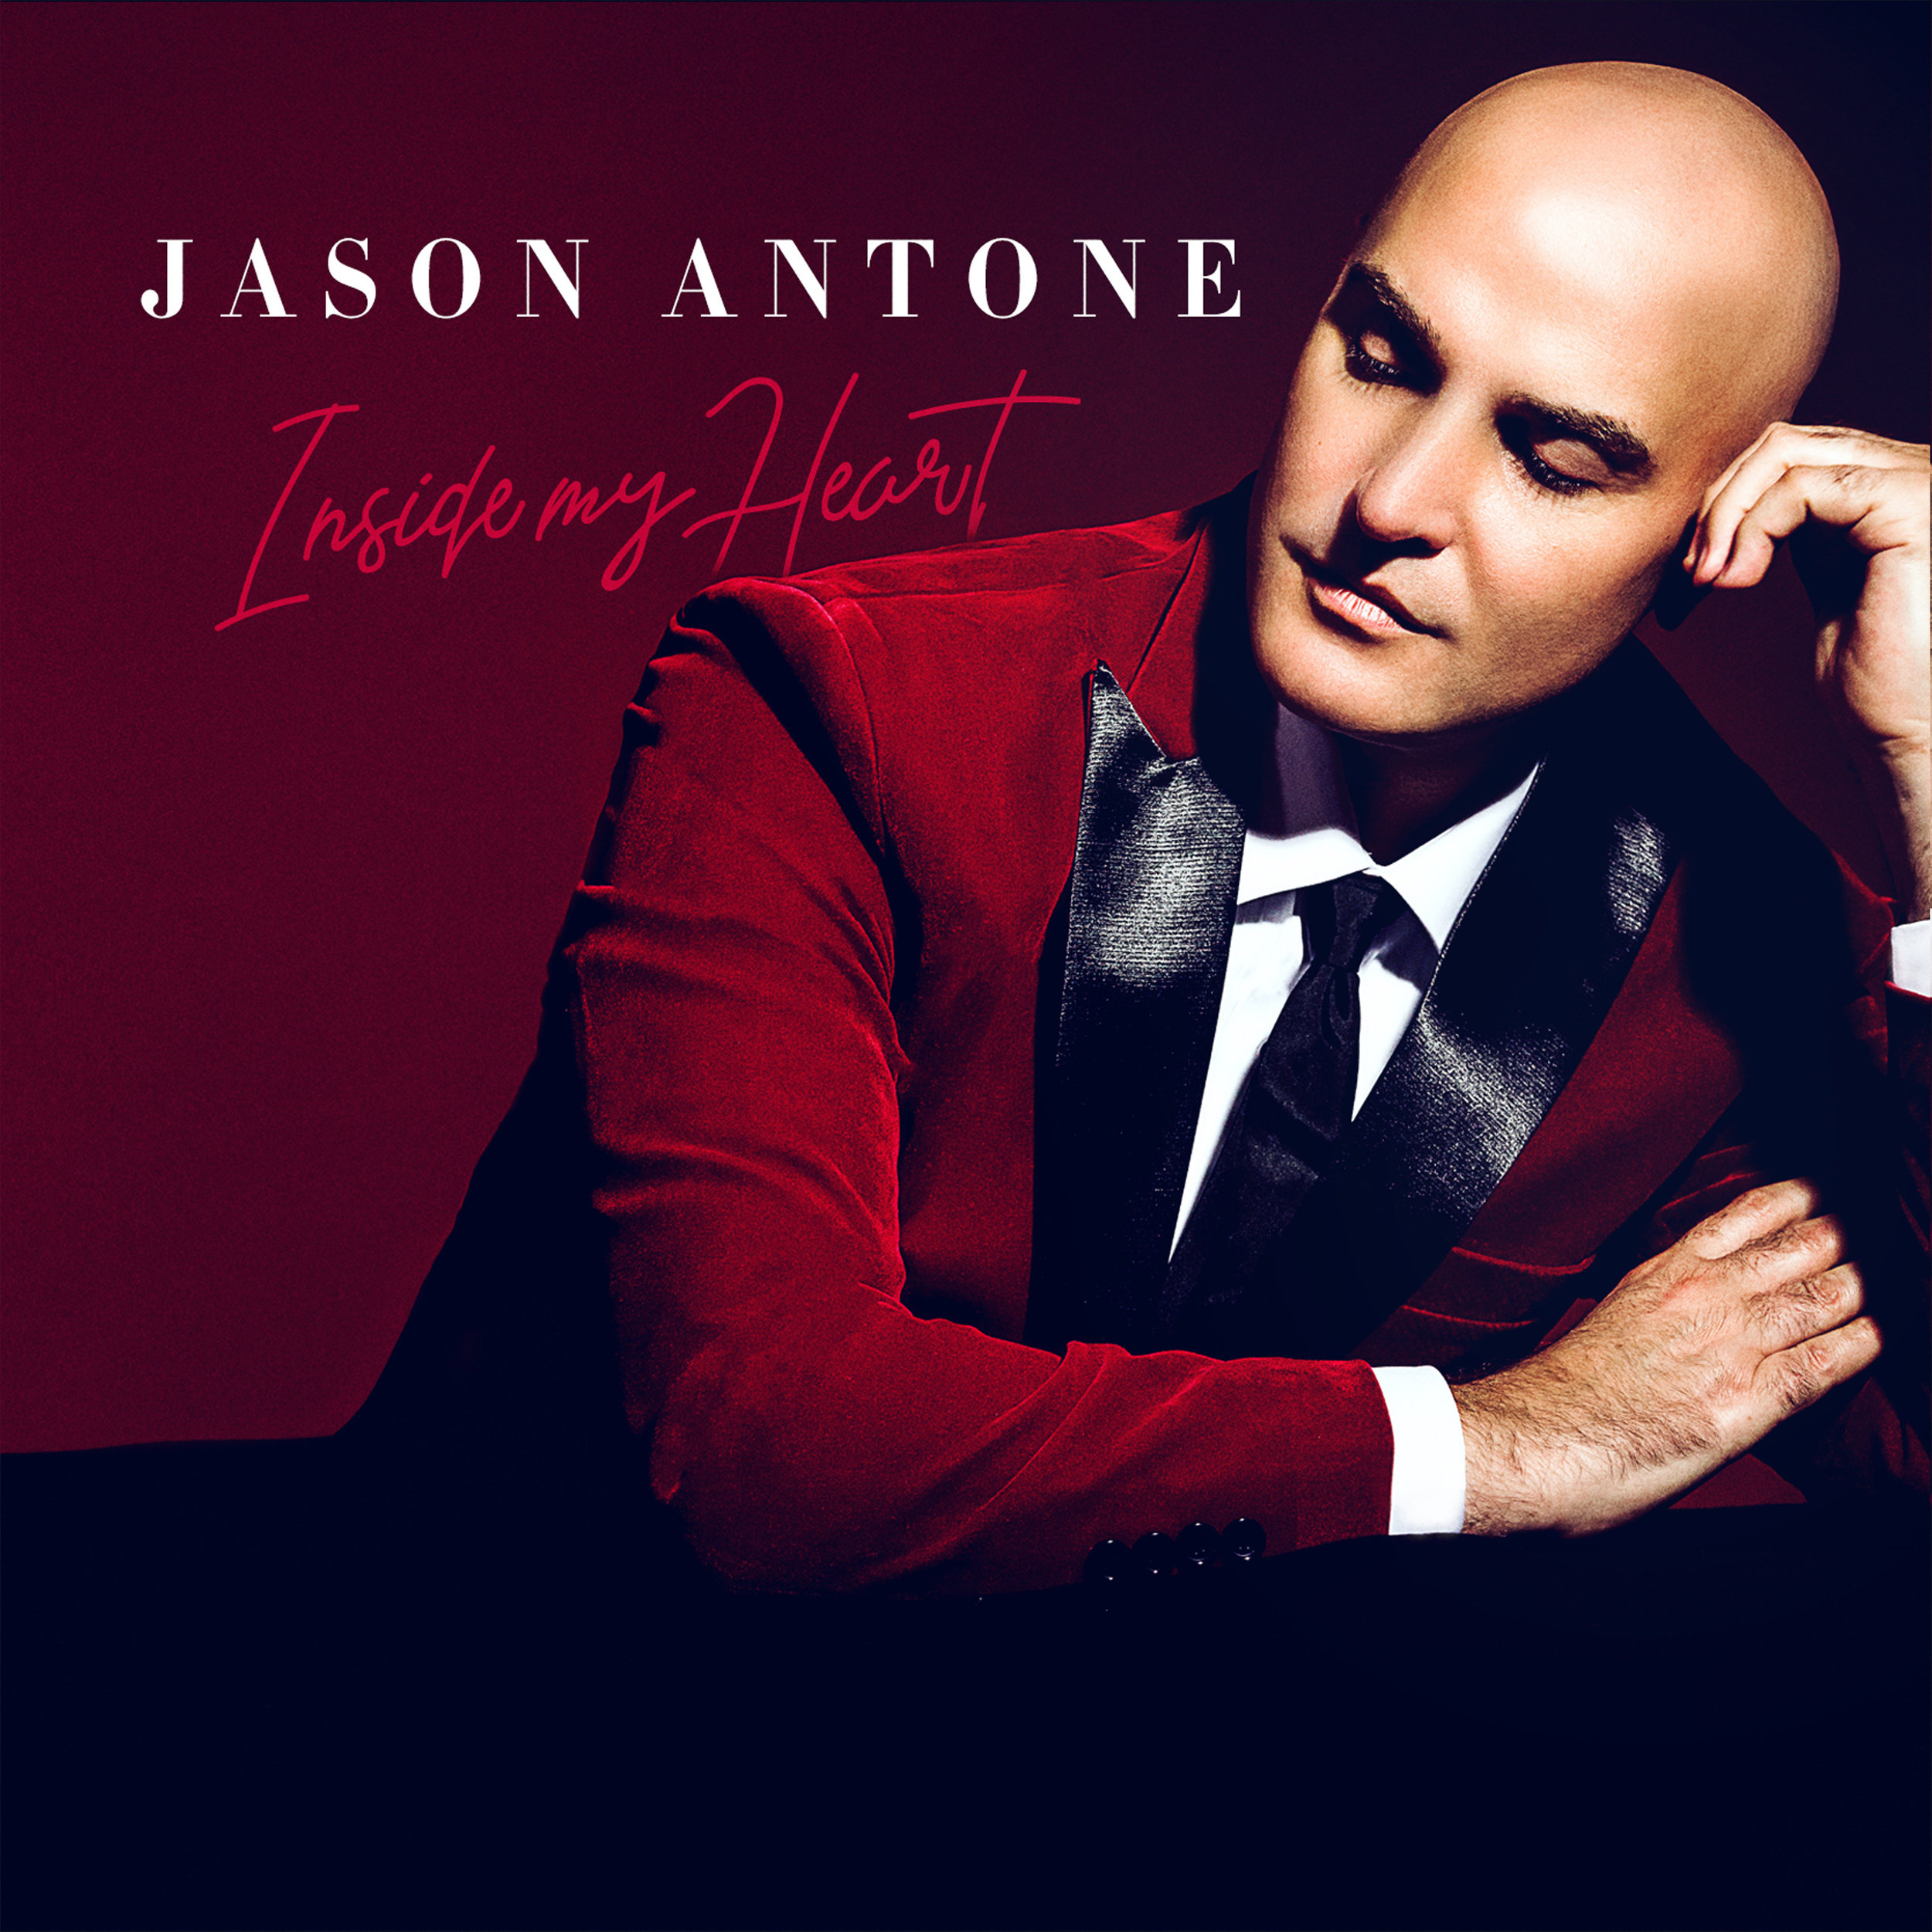 New album 'inside my heart' - Antone's new album Inside My Heart was recorded with a full orchestra at the famous Ocean Way Recording Studios in Nashville with arrangements by Dove Award nominee Phillip Keveren. While the album showcases Jason's linguistic versatility, he sings in five different languages, it is moments like the title track that become uniquely personal for the listener - a memoriam to the ones we have loved and lost.